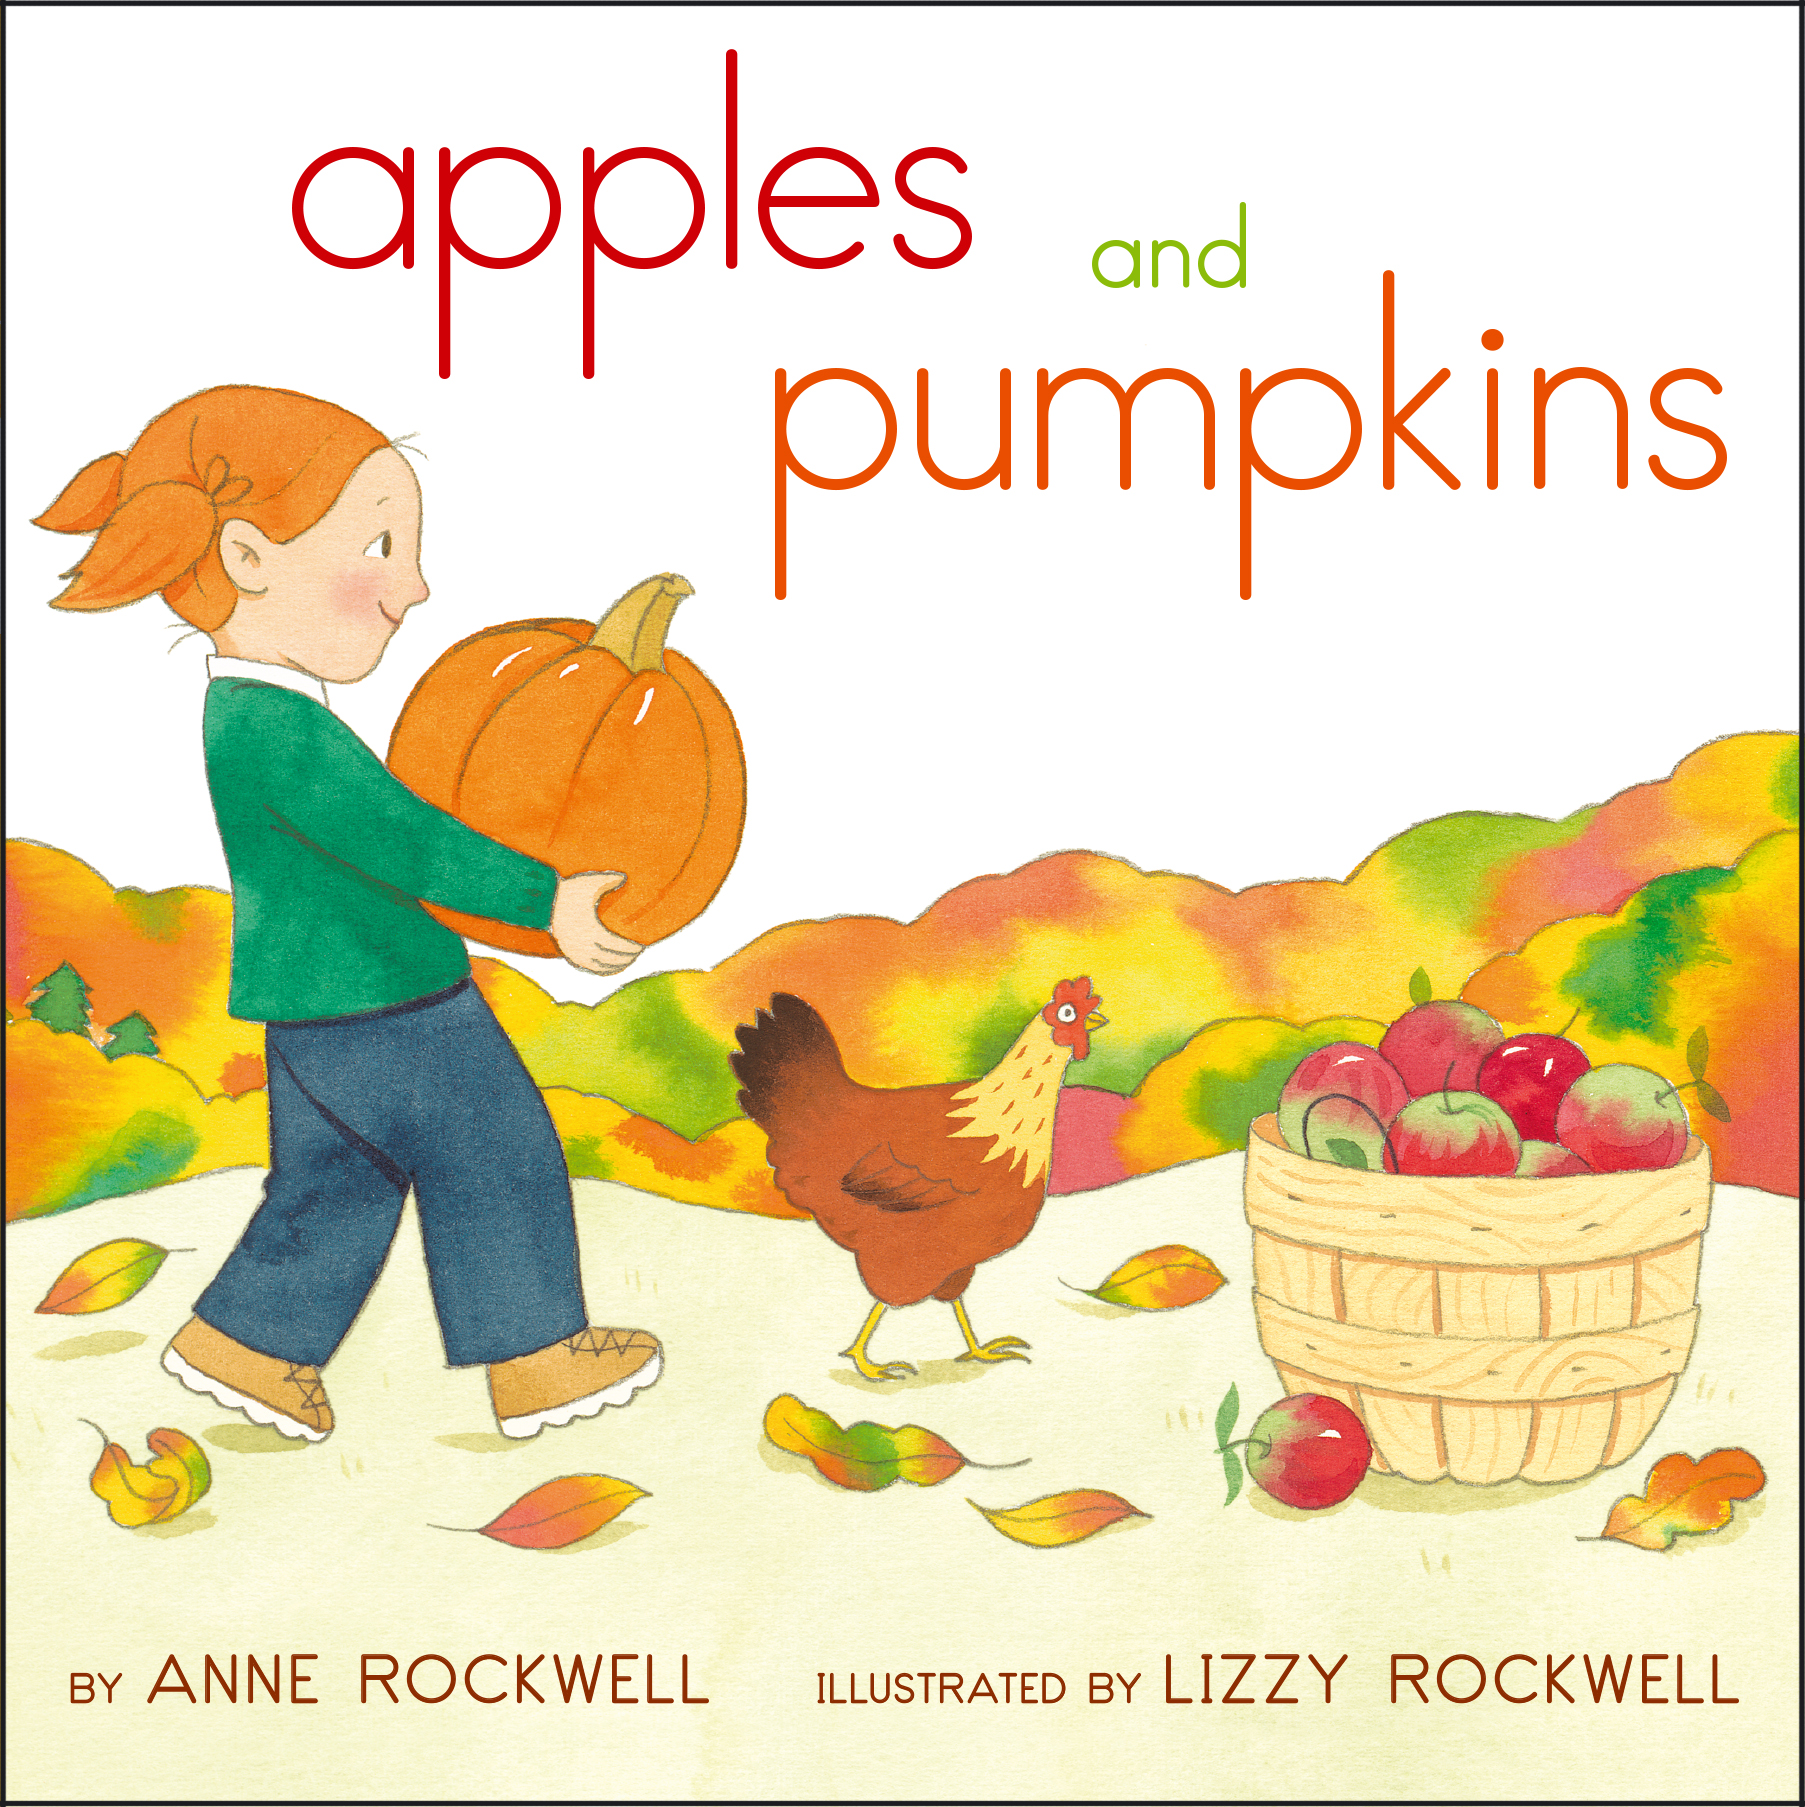 Apples and pumpkins book by anne rockwell lizzy rockwell apples and pumpkins 9781442499775 hr fandeluxe